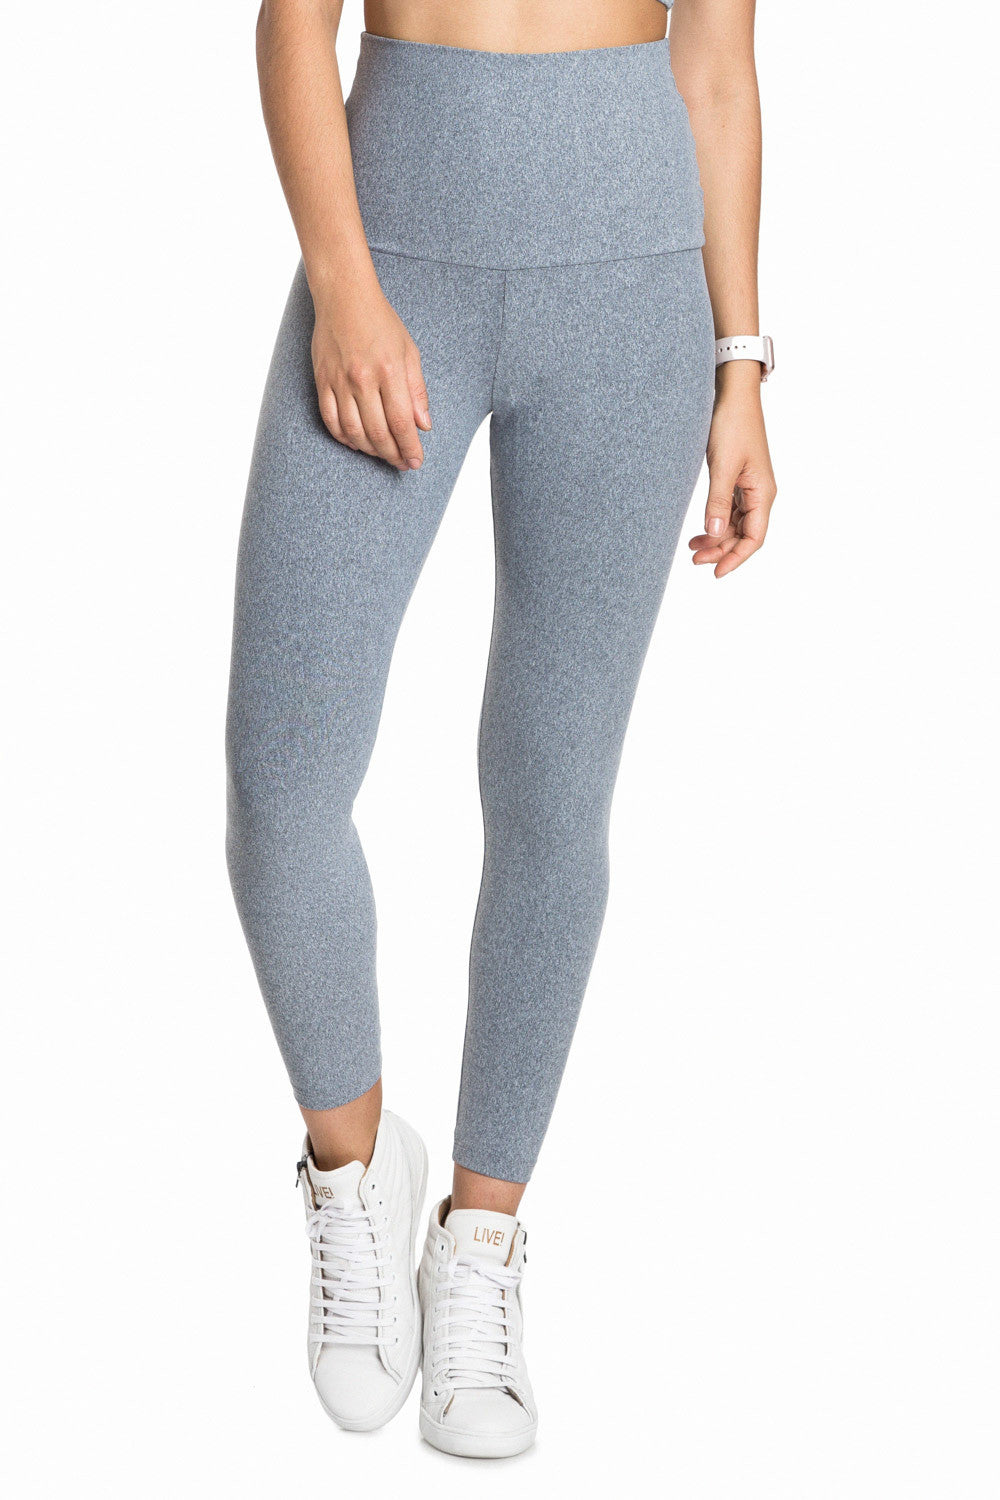 Essential Active High Legging